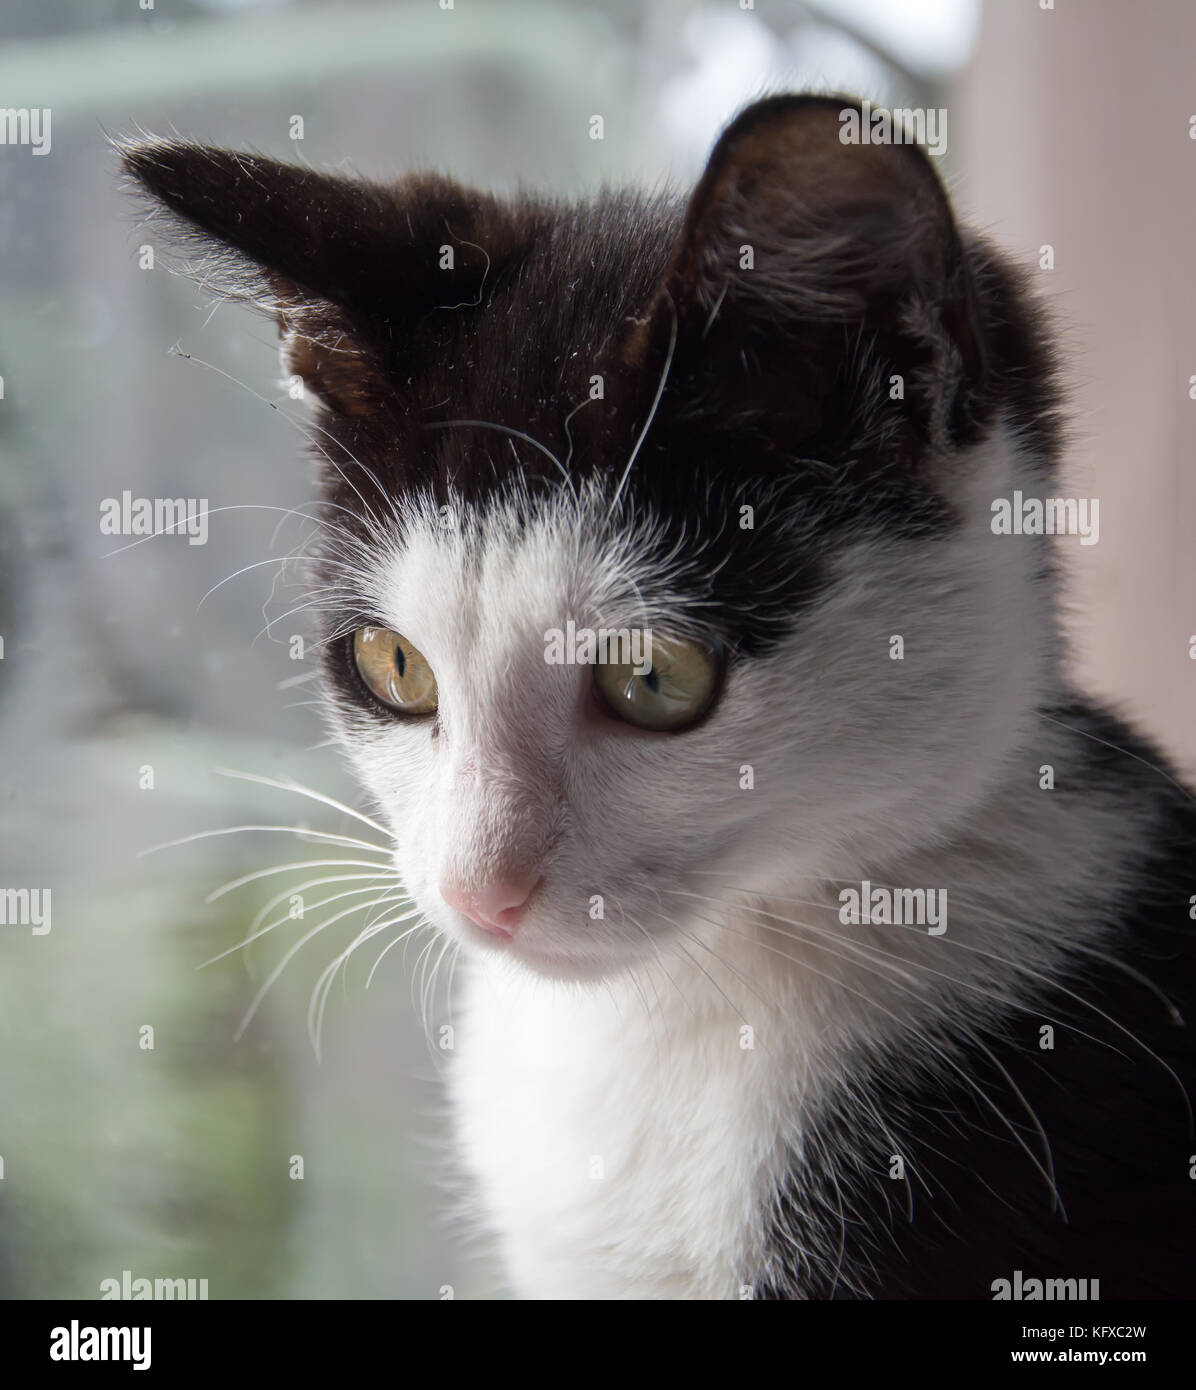 Closeup of a face of young black and white kitten - looking down - Stock Image